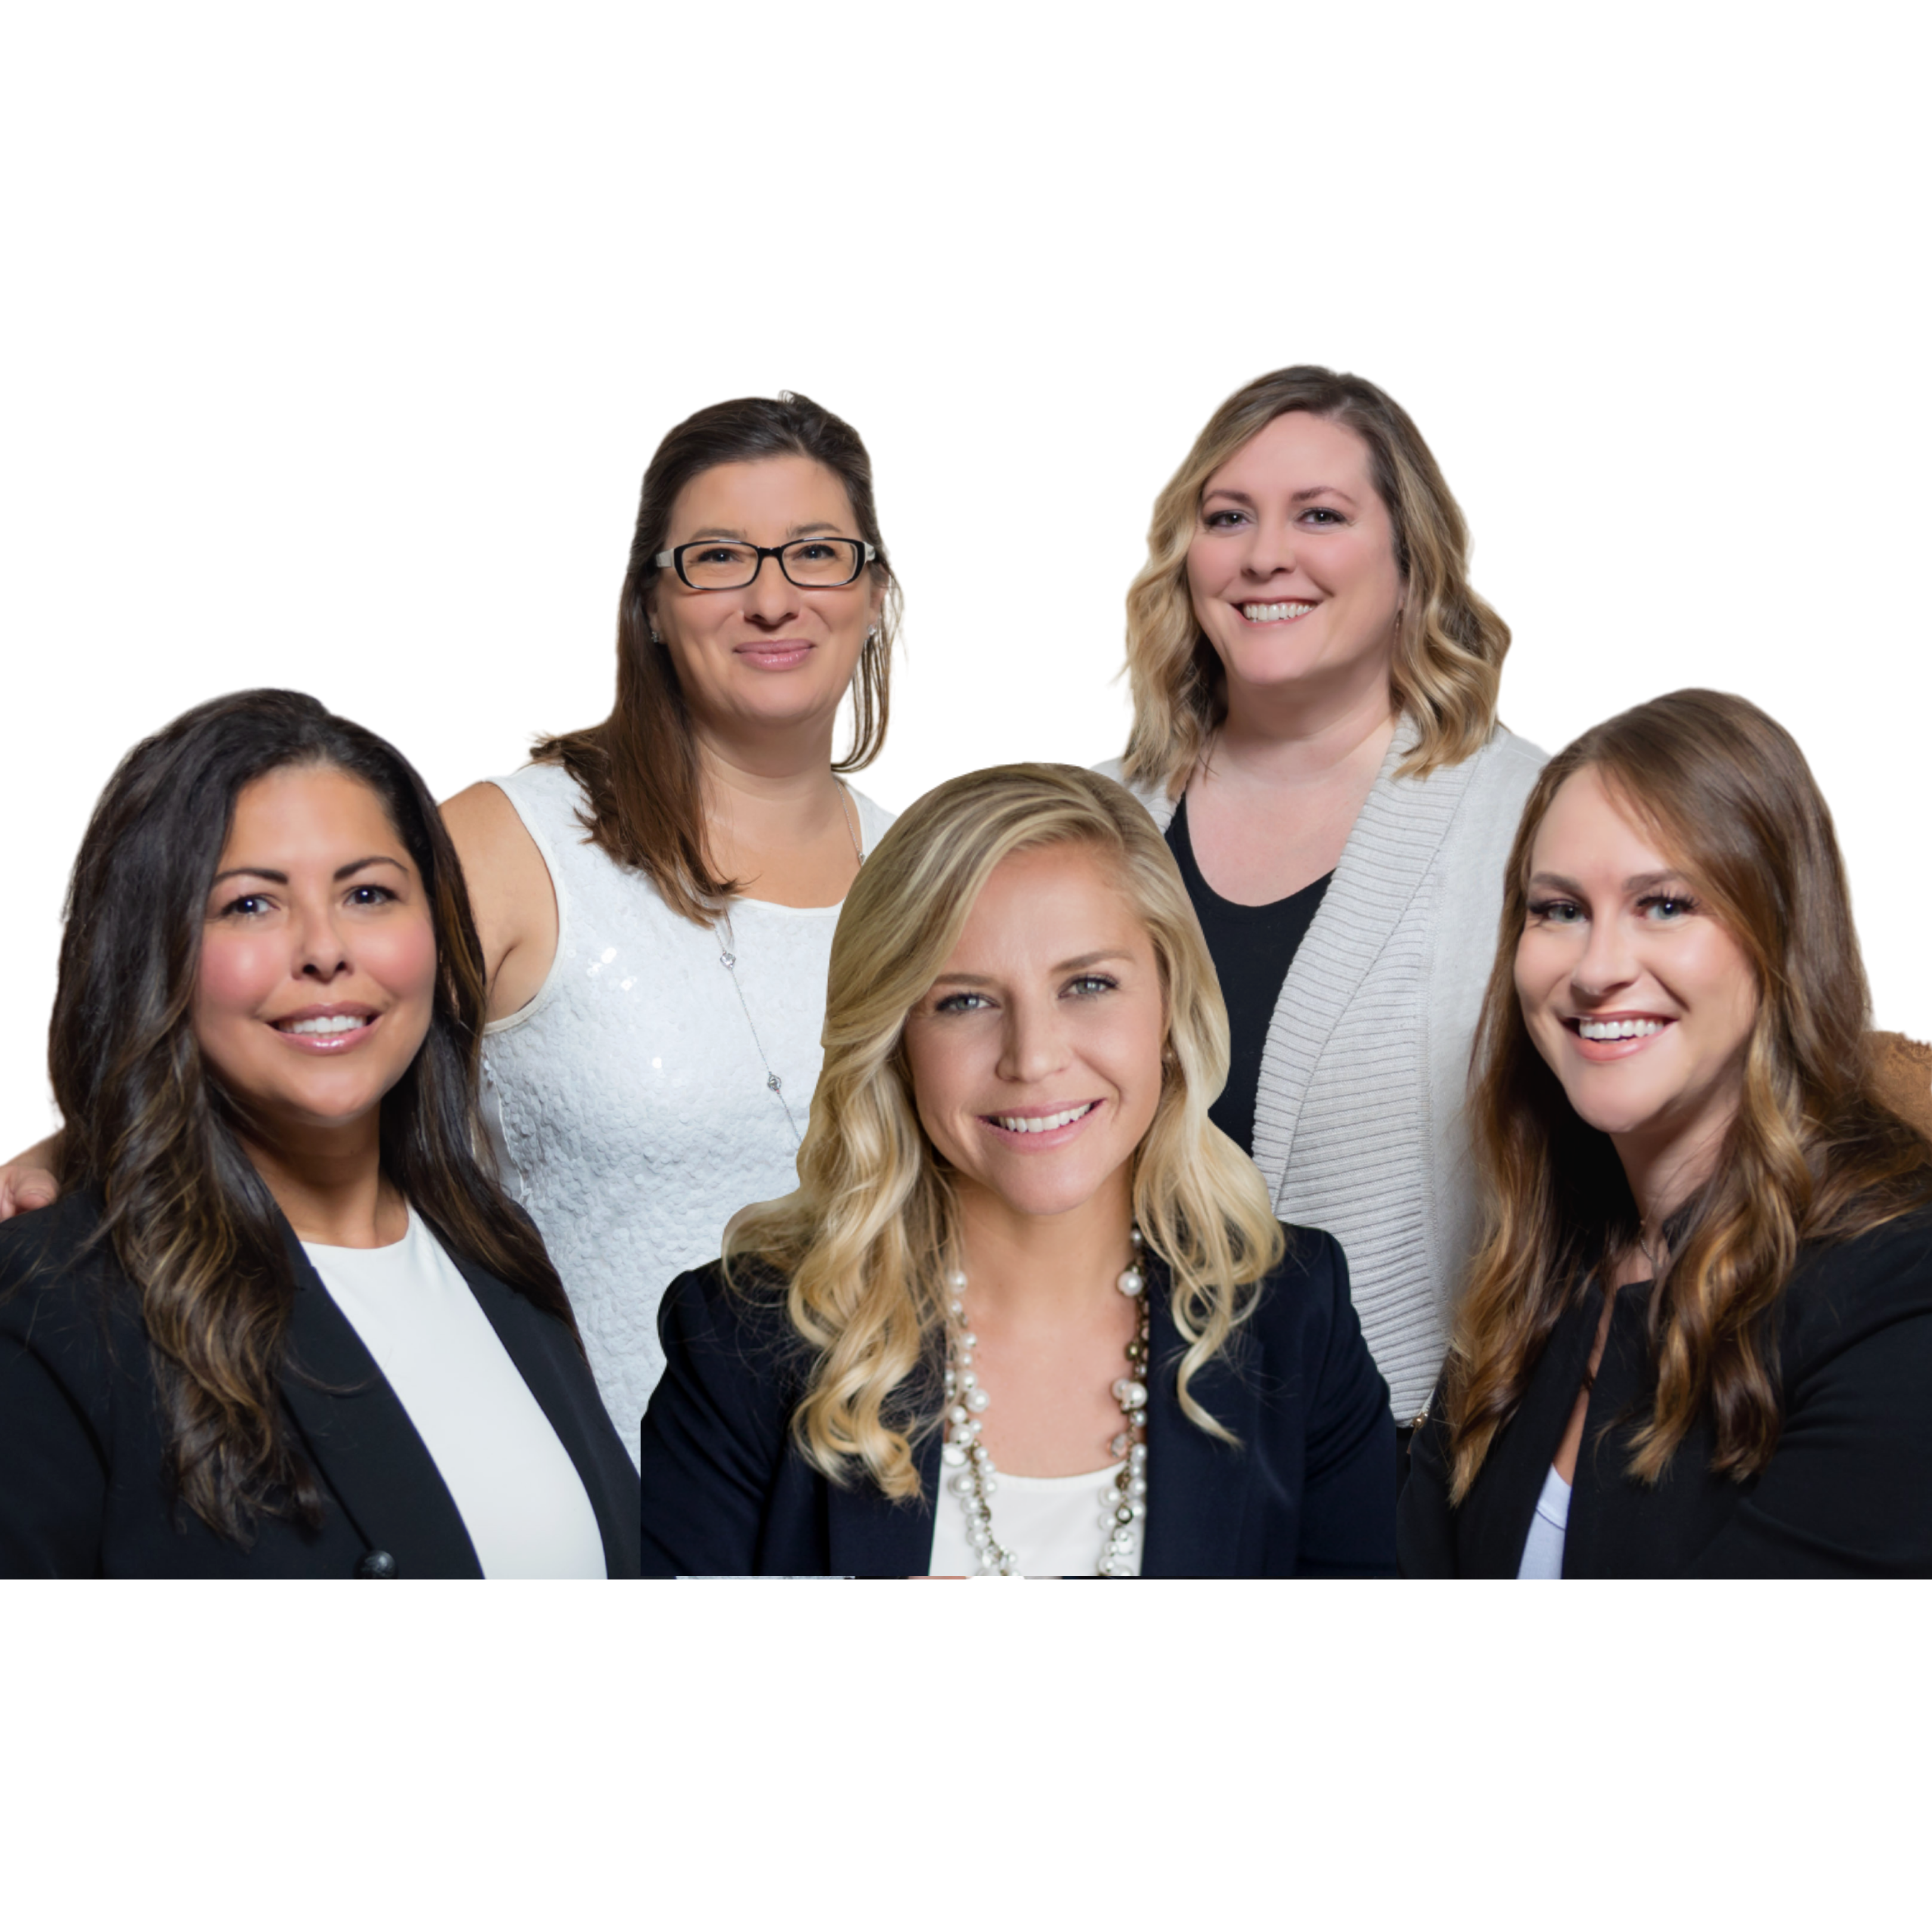 Heath Counseling Dallas Counseling Rockwall Counseling Team